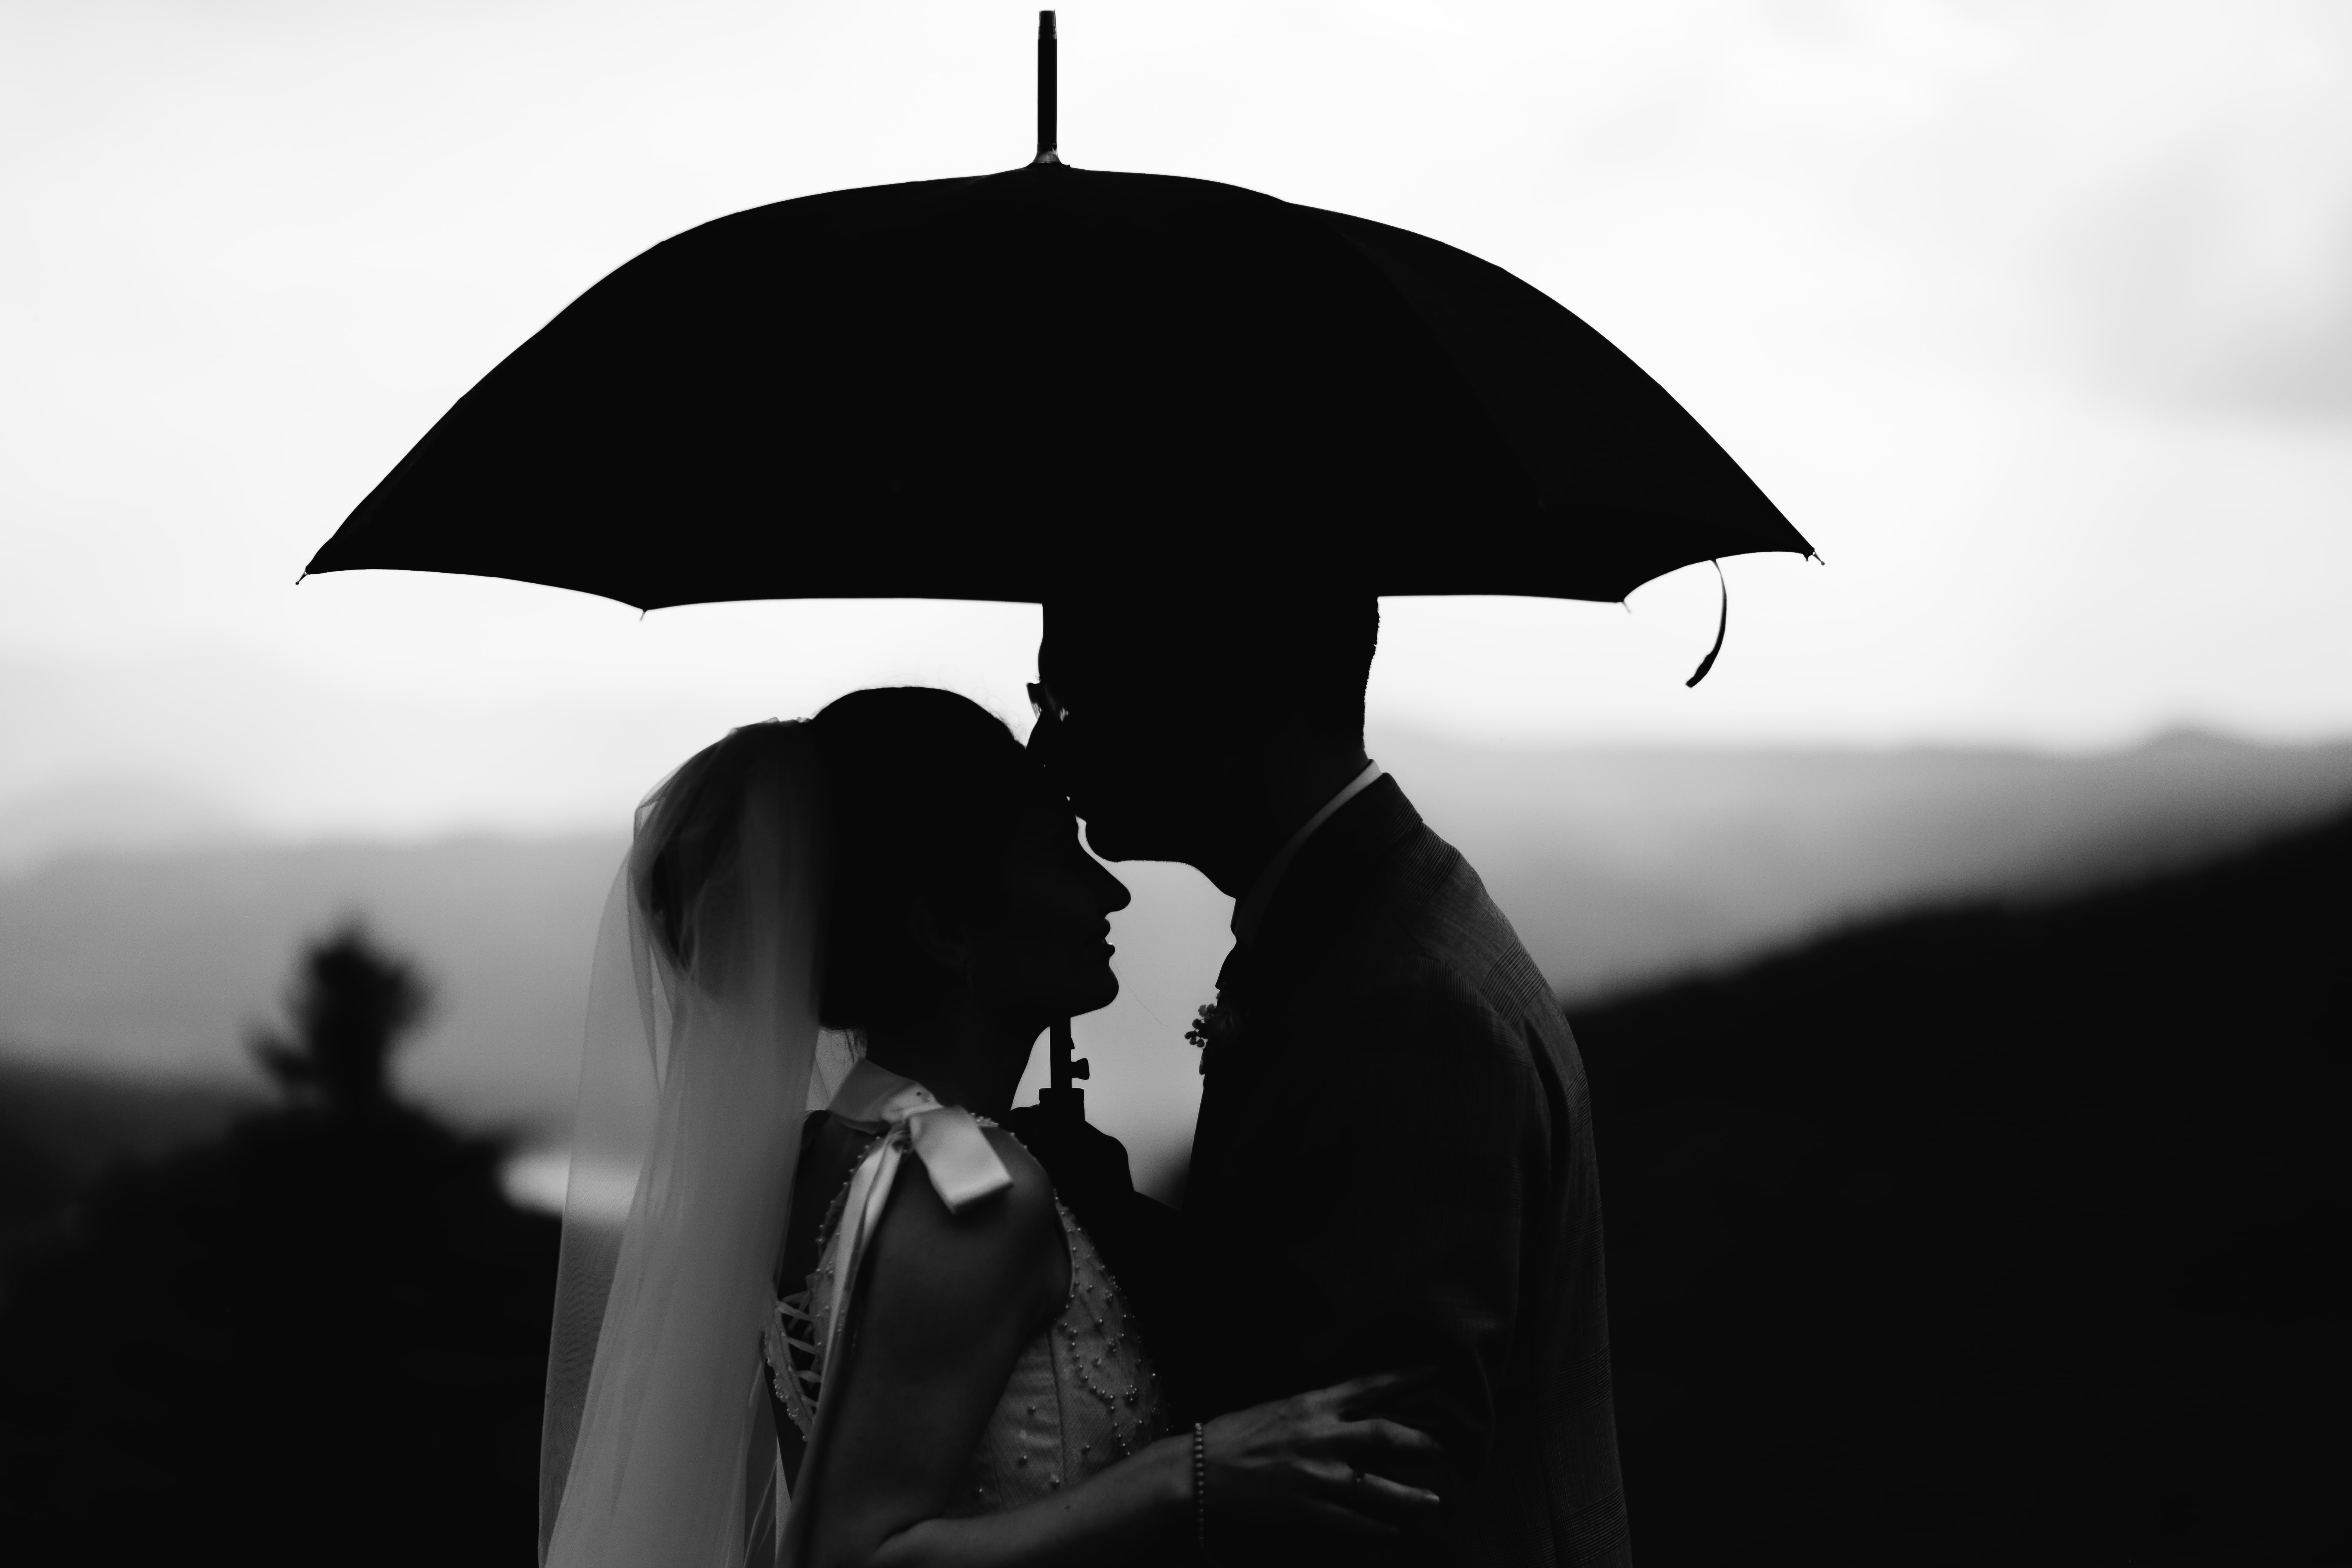 Be ready for bad weather on the wedding day. Image by Gabriel Crismariu